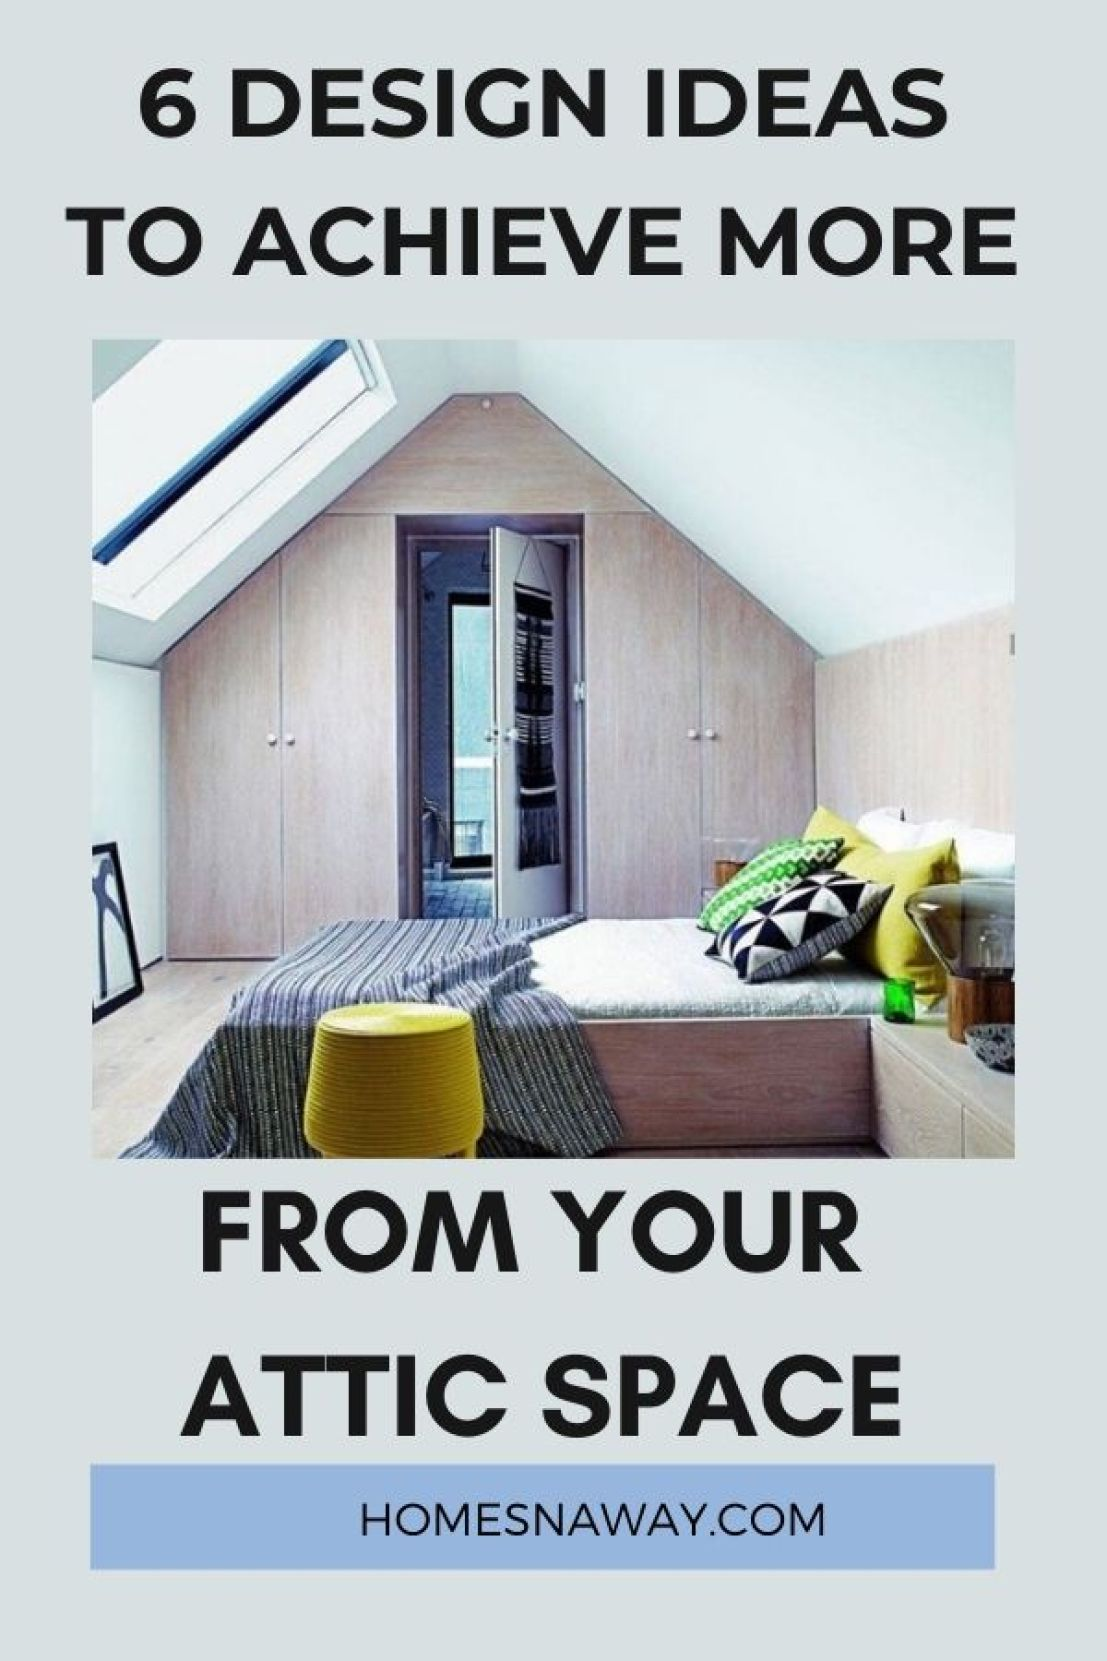 Enjoy Your Home by Utilizing Your Attic Space